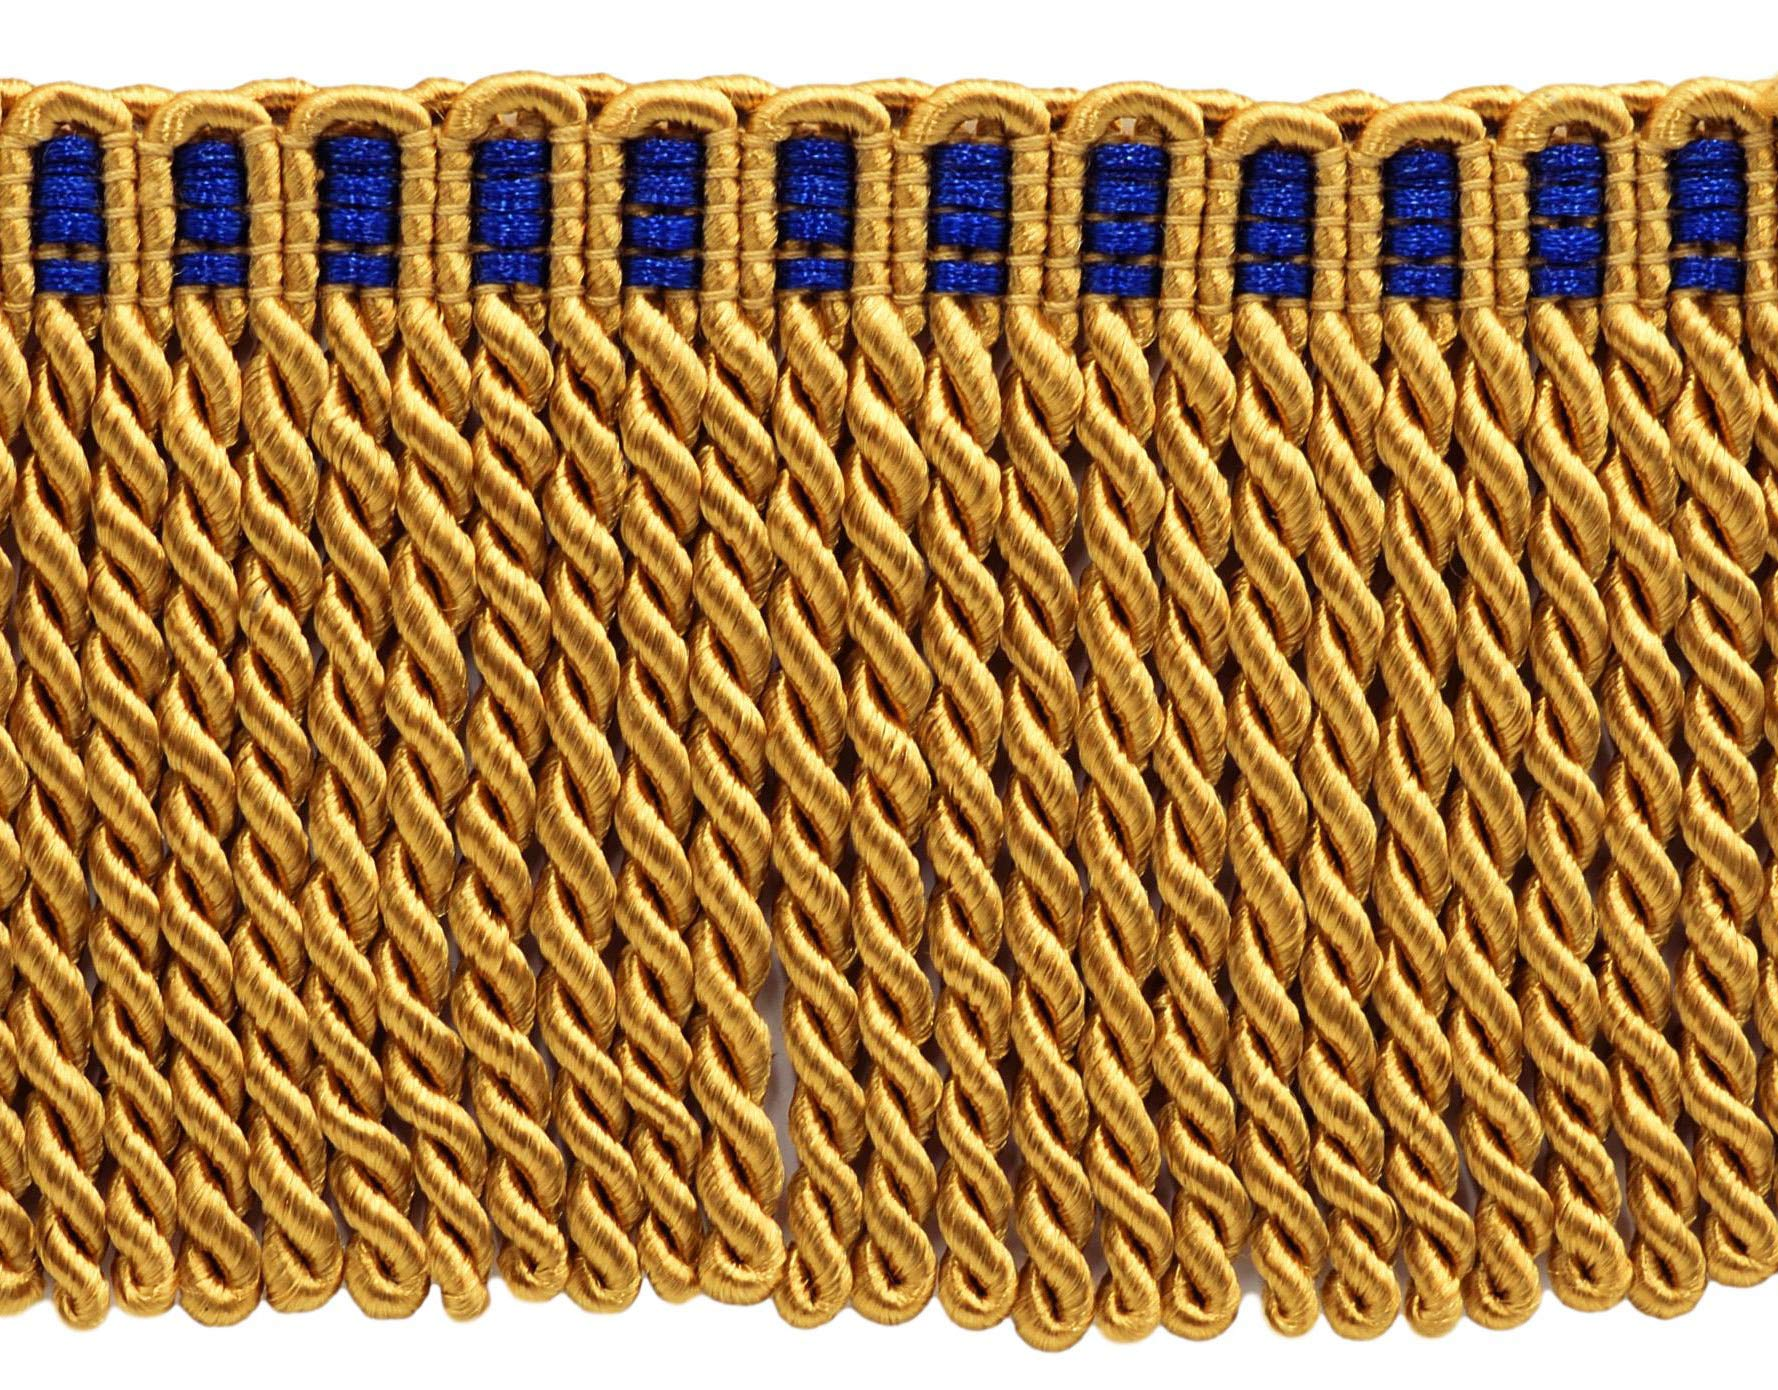 DÉCOPRO 16 Feet Value Pack of 3 Inch Long Bullion Fringe Trim, Style# DB3 - Gold with Blue Header C4T (5.4 Yards / 5 Meters) by DÉCOPRO